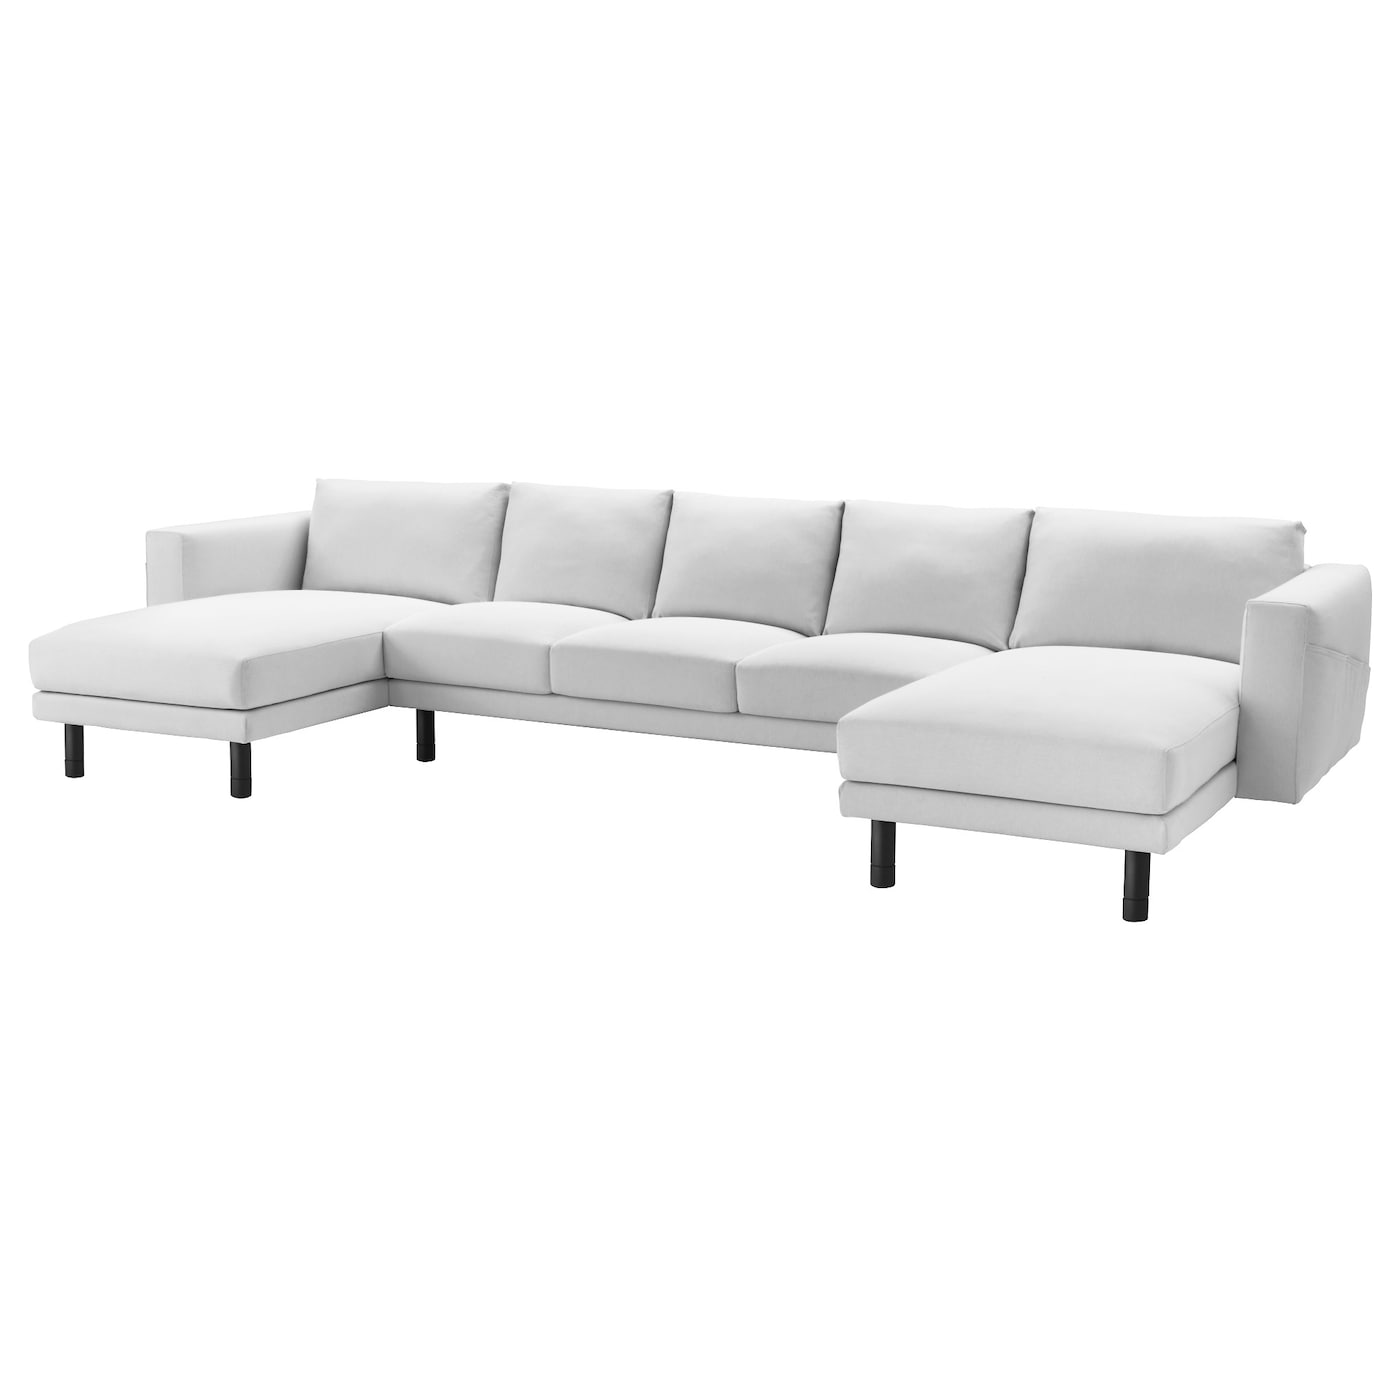 Norsborg 3 seat sofa with 2 chaise longues finnsta white for 2 seater chaise sofa